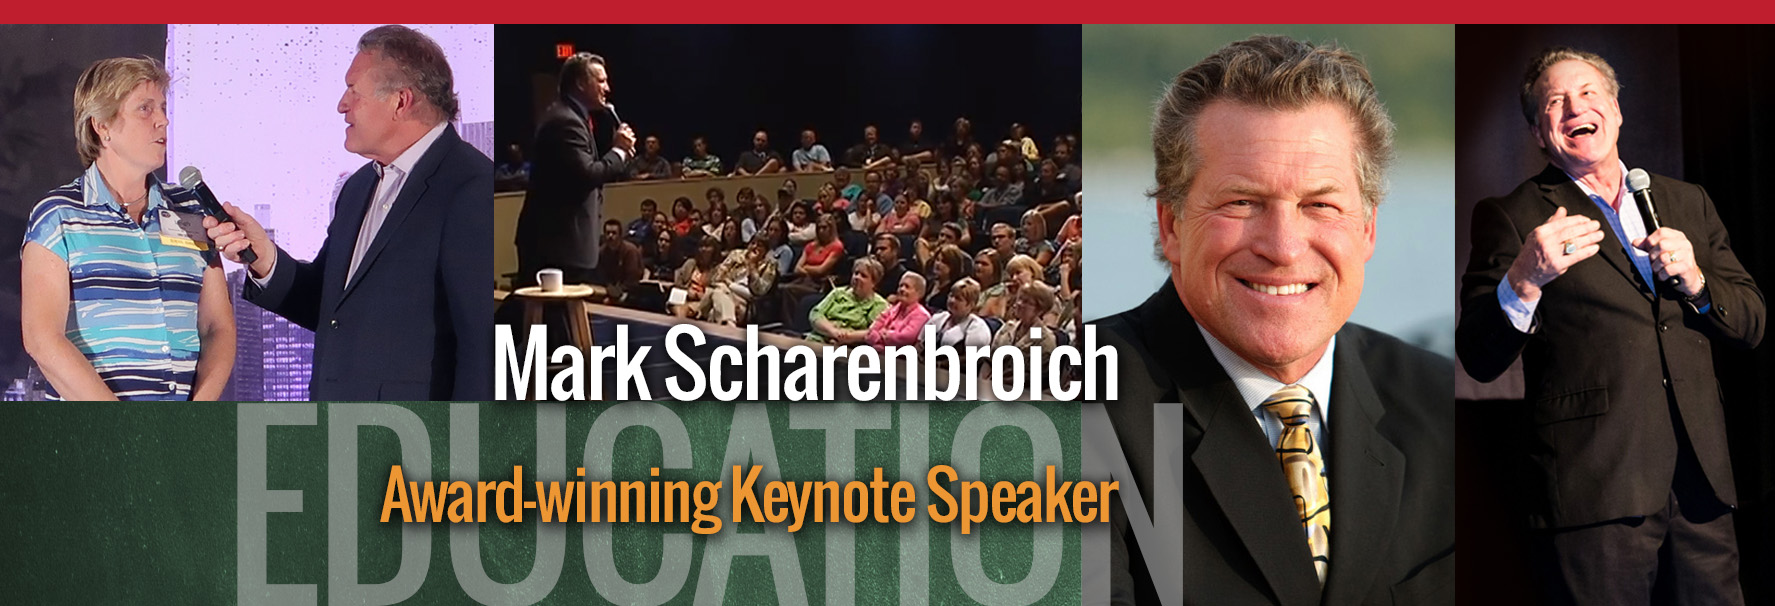 Education Motivational Speaker Mark Scharenbroich